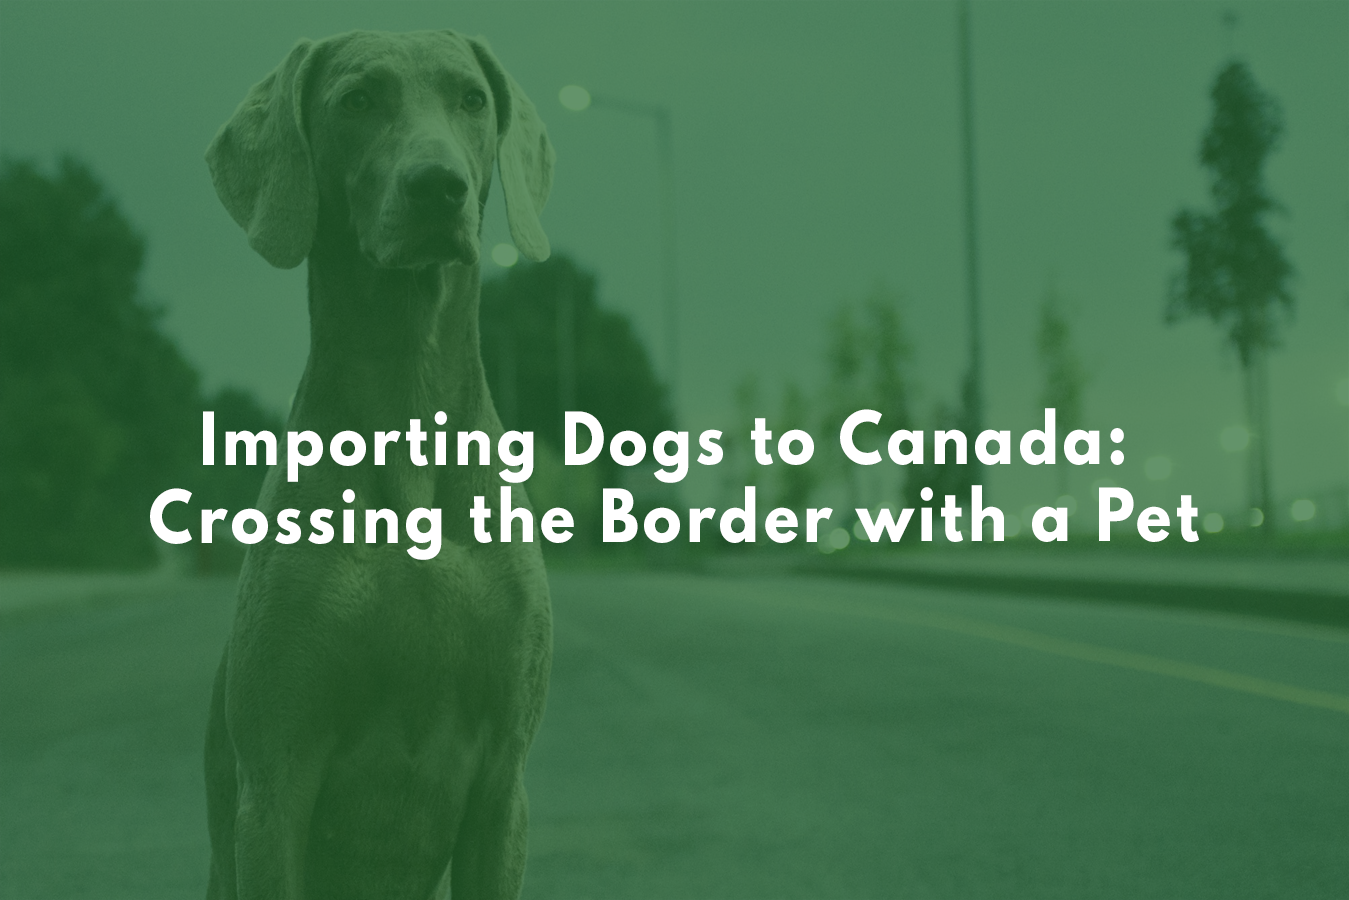 Importing Dogs To Canada Crossing The Border With A Pet